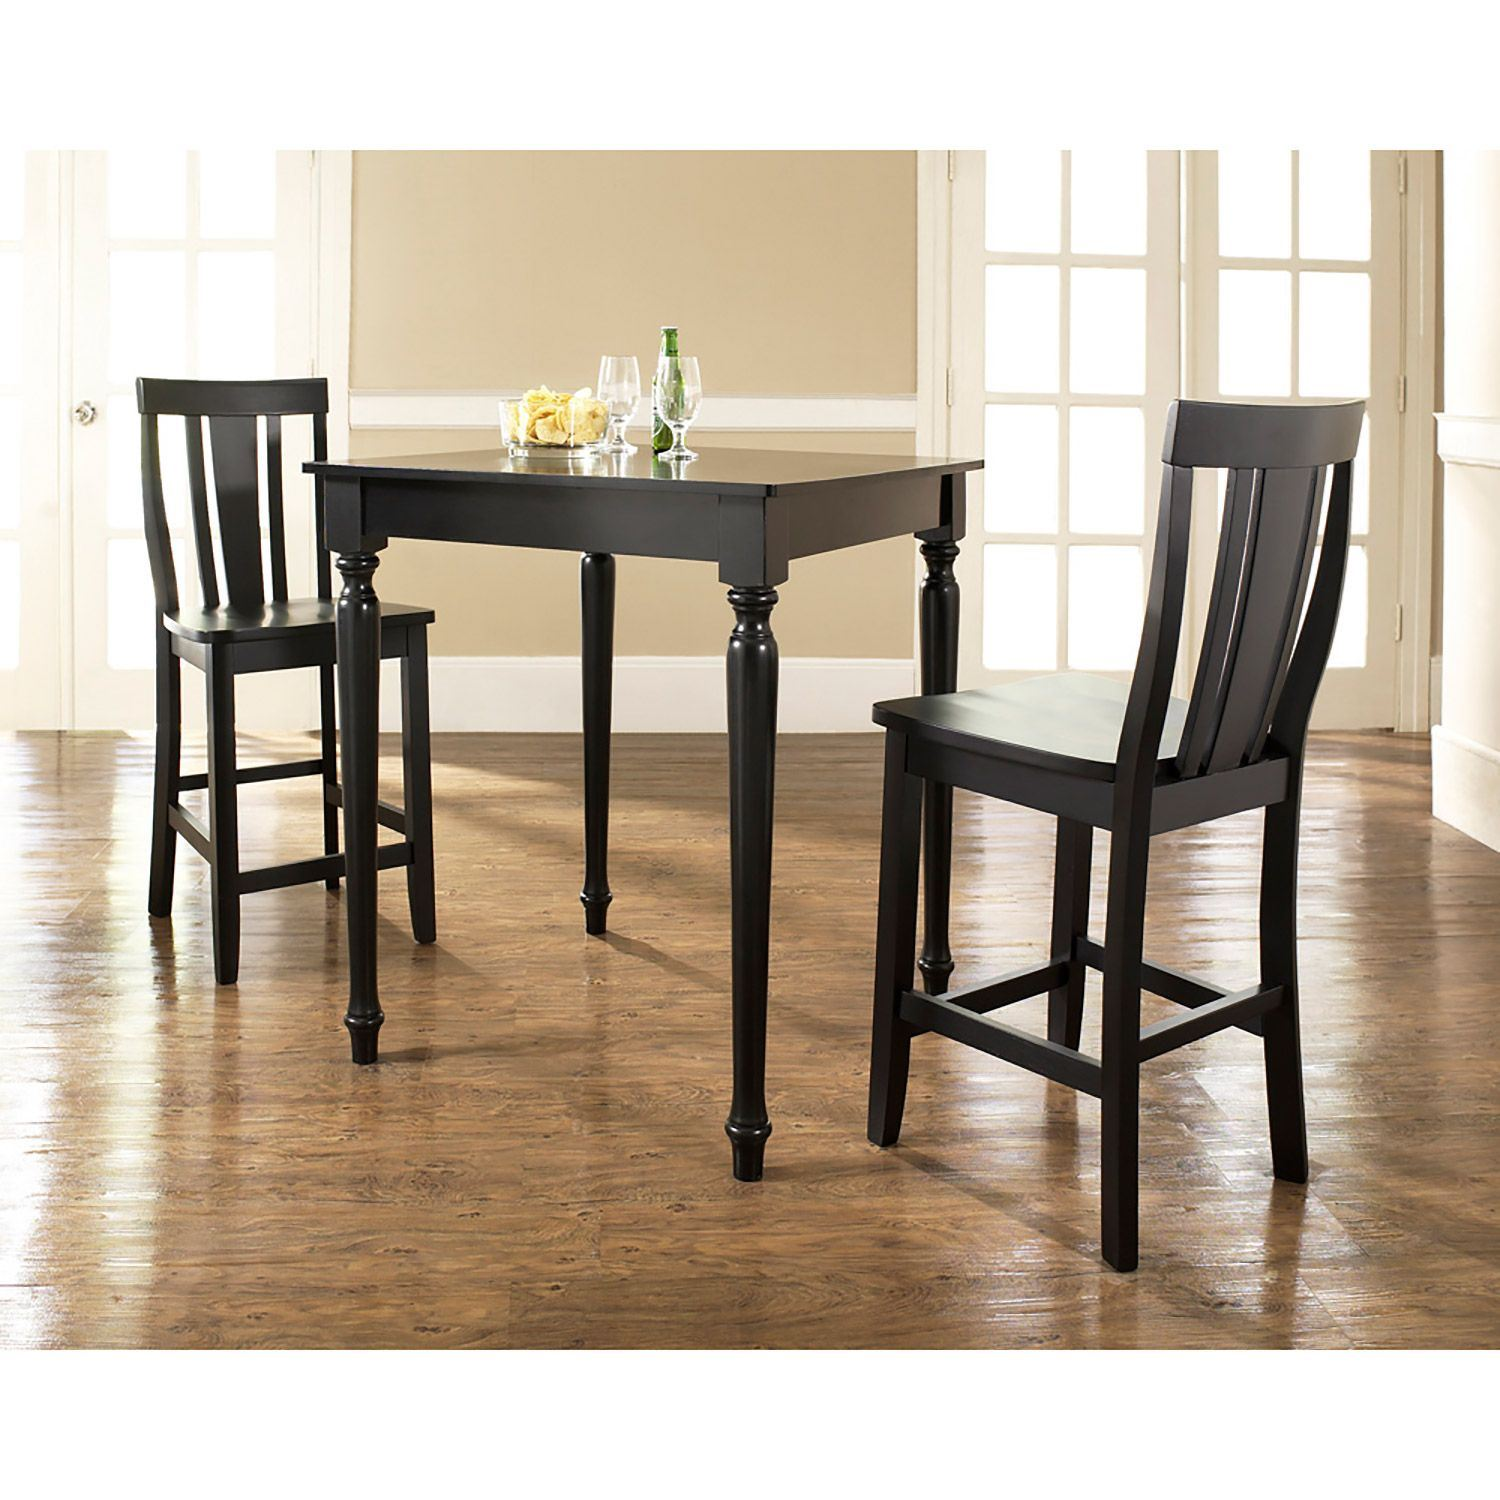 3-Piece Pub Dining Set, Black *D